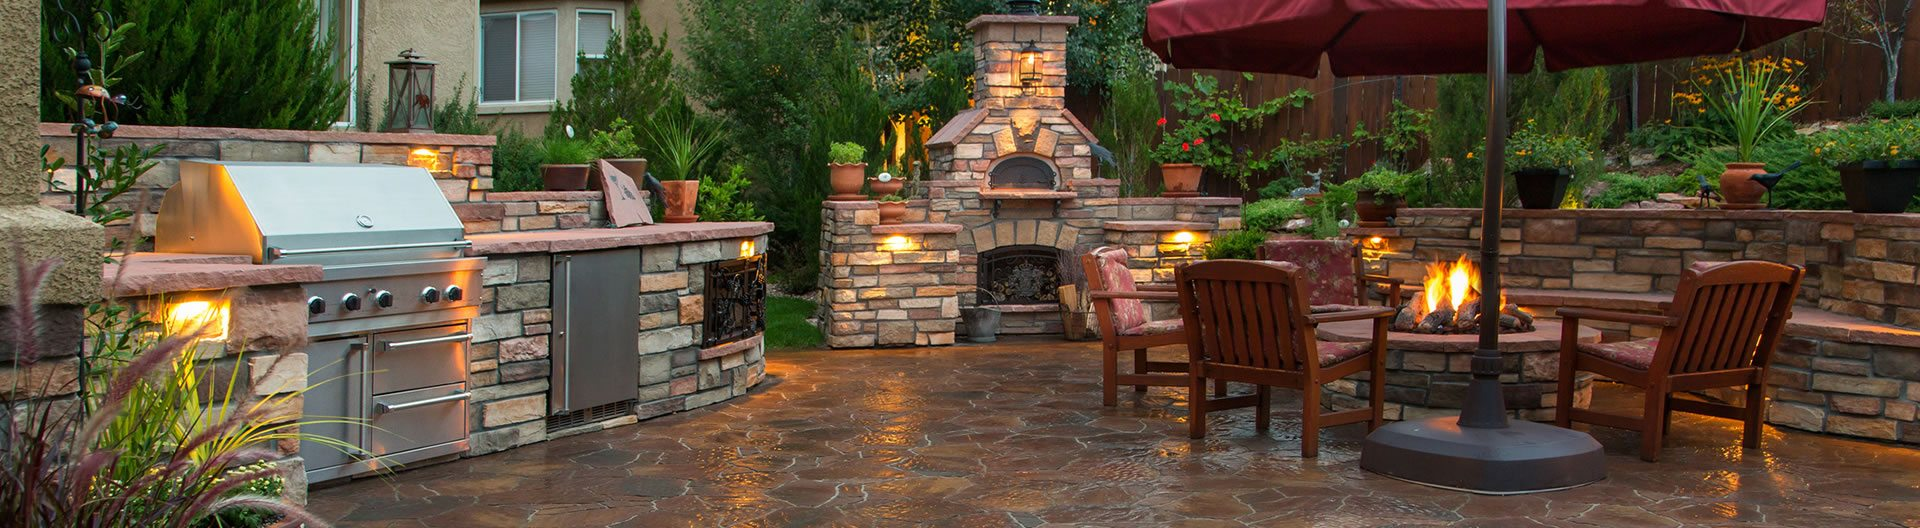 Hardscaping Work including outdoor kitchen, fireplace, firepit, patio